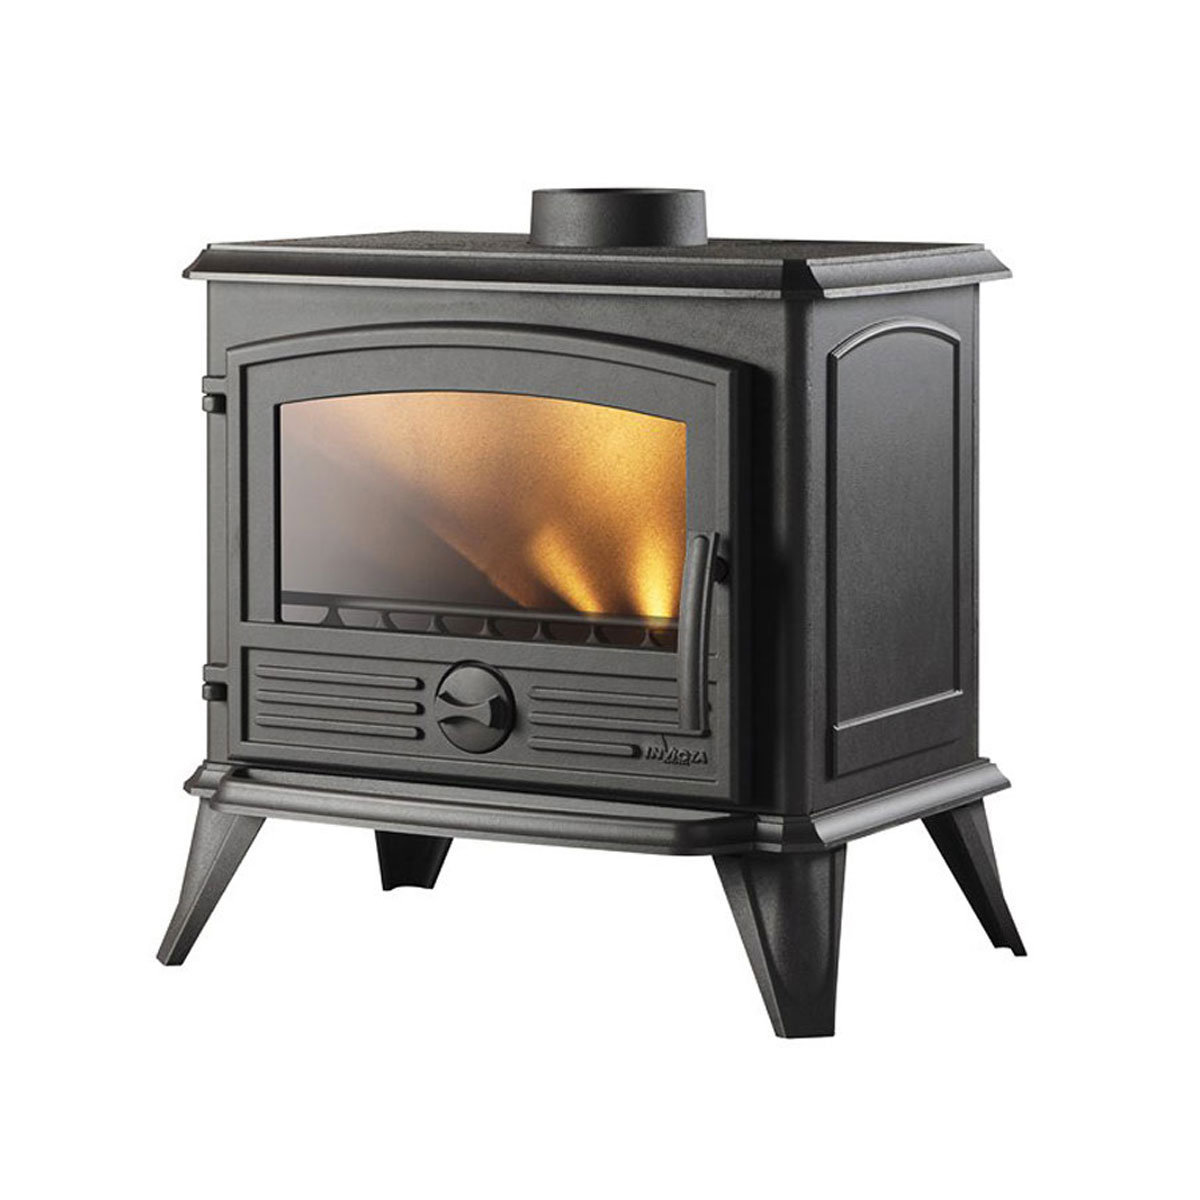 INVICTA FRANCE Wood Stove Samara